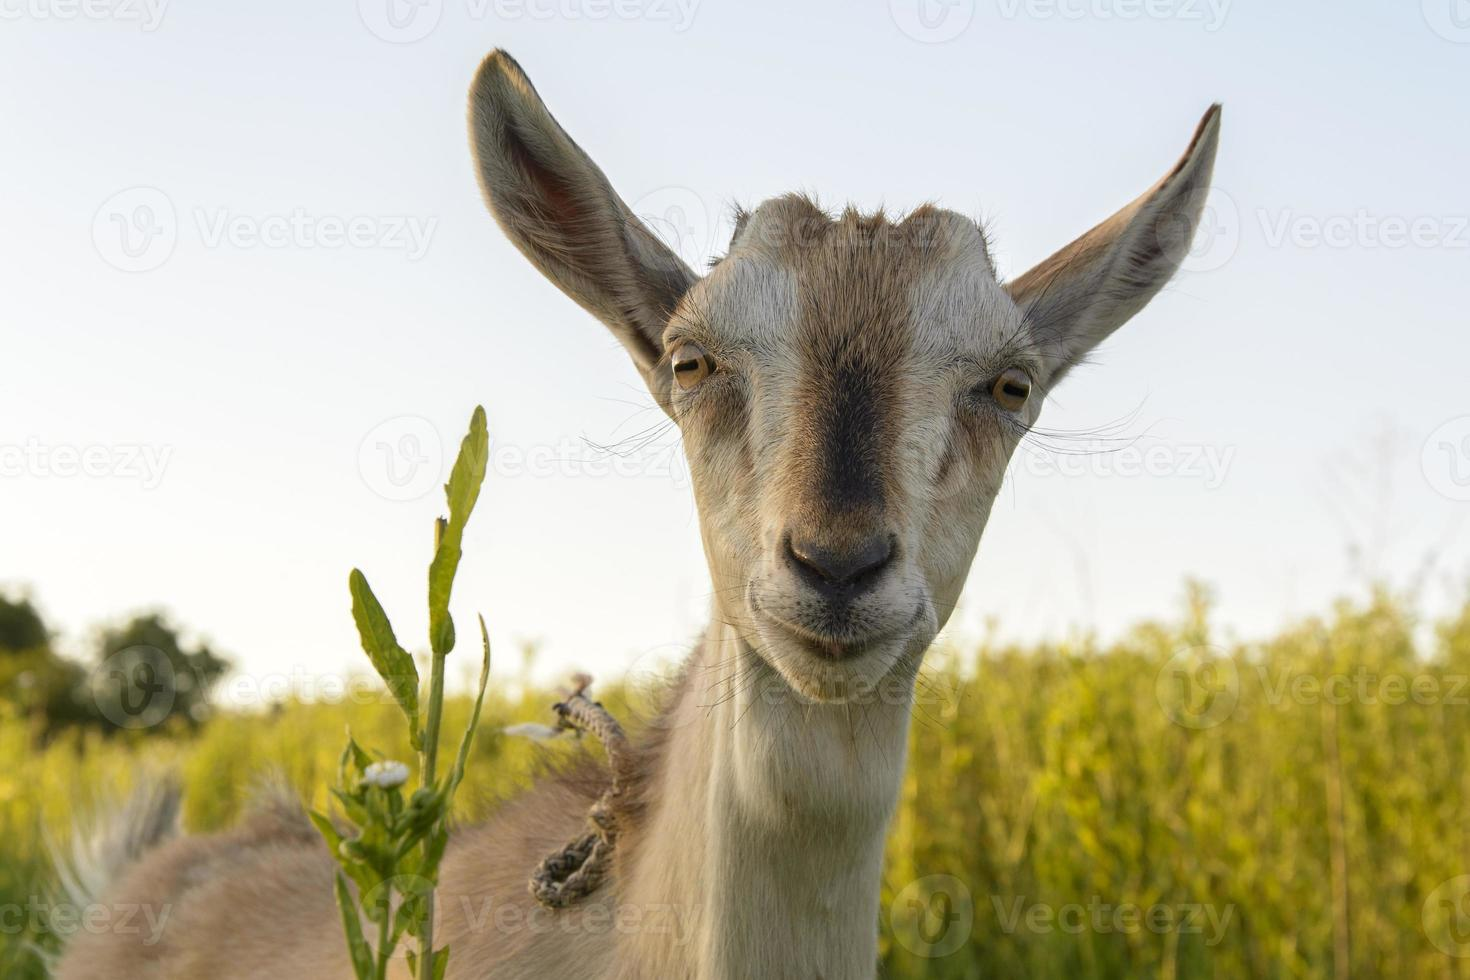 Goat in the grass photo